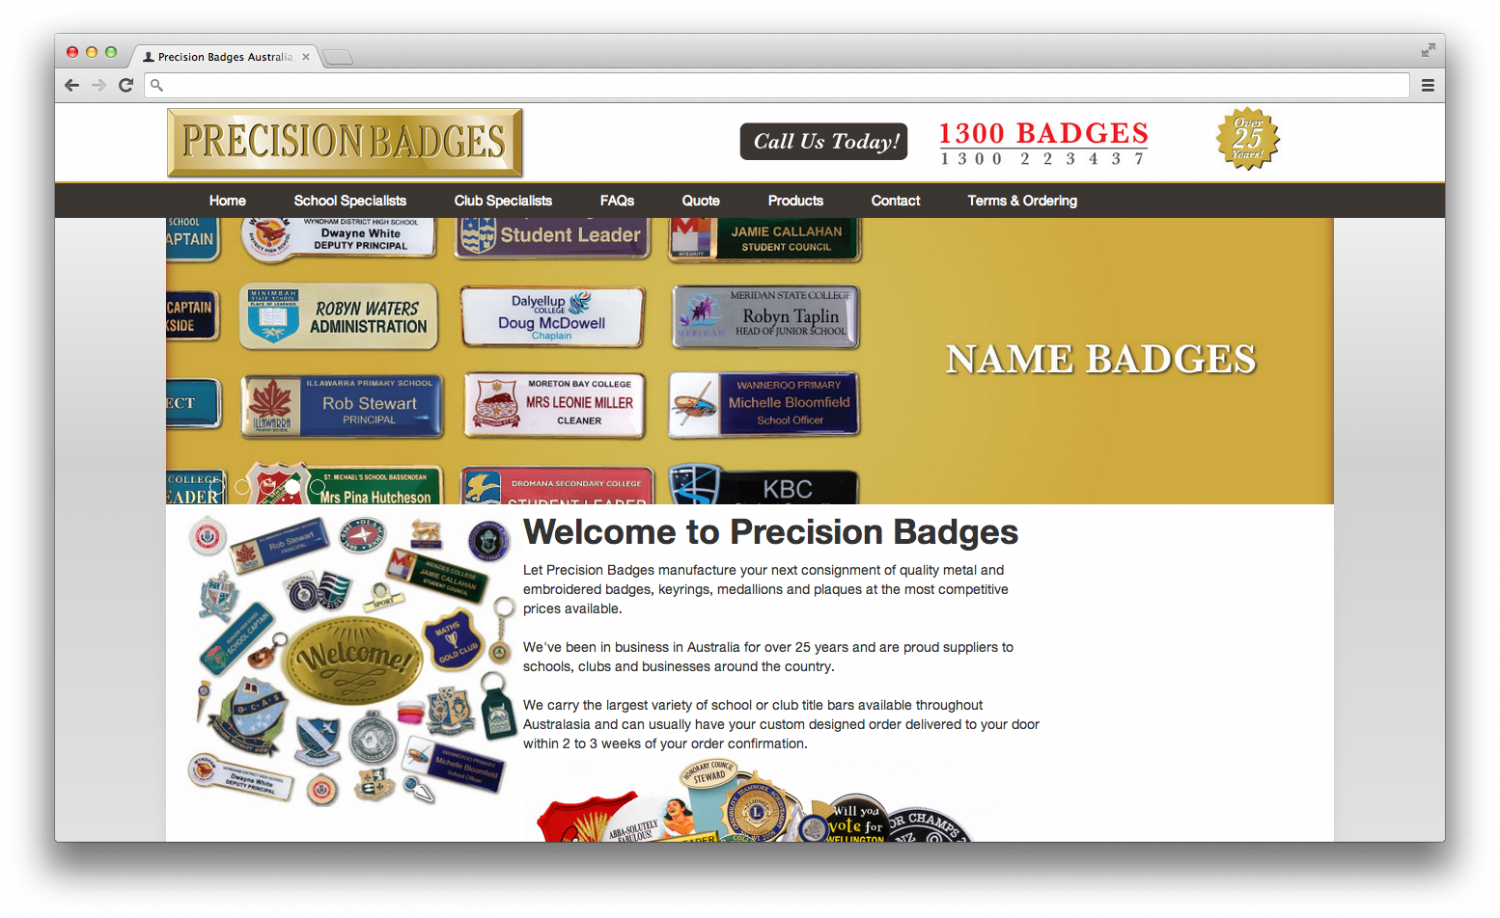 New website launched - Precision Badges Australia